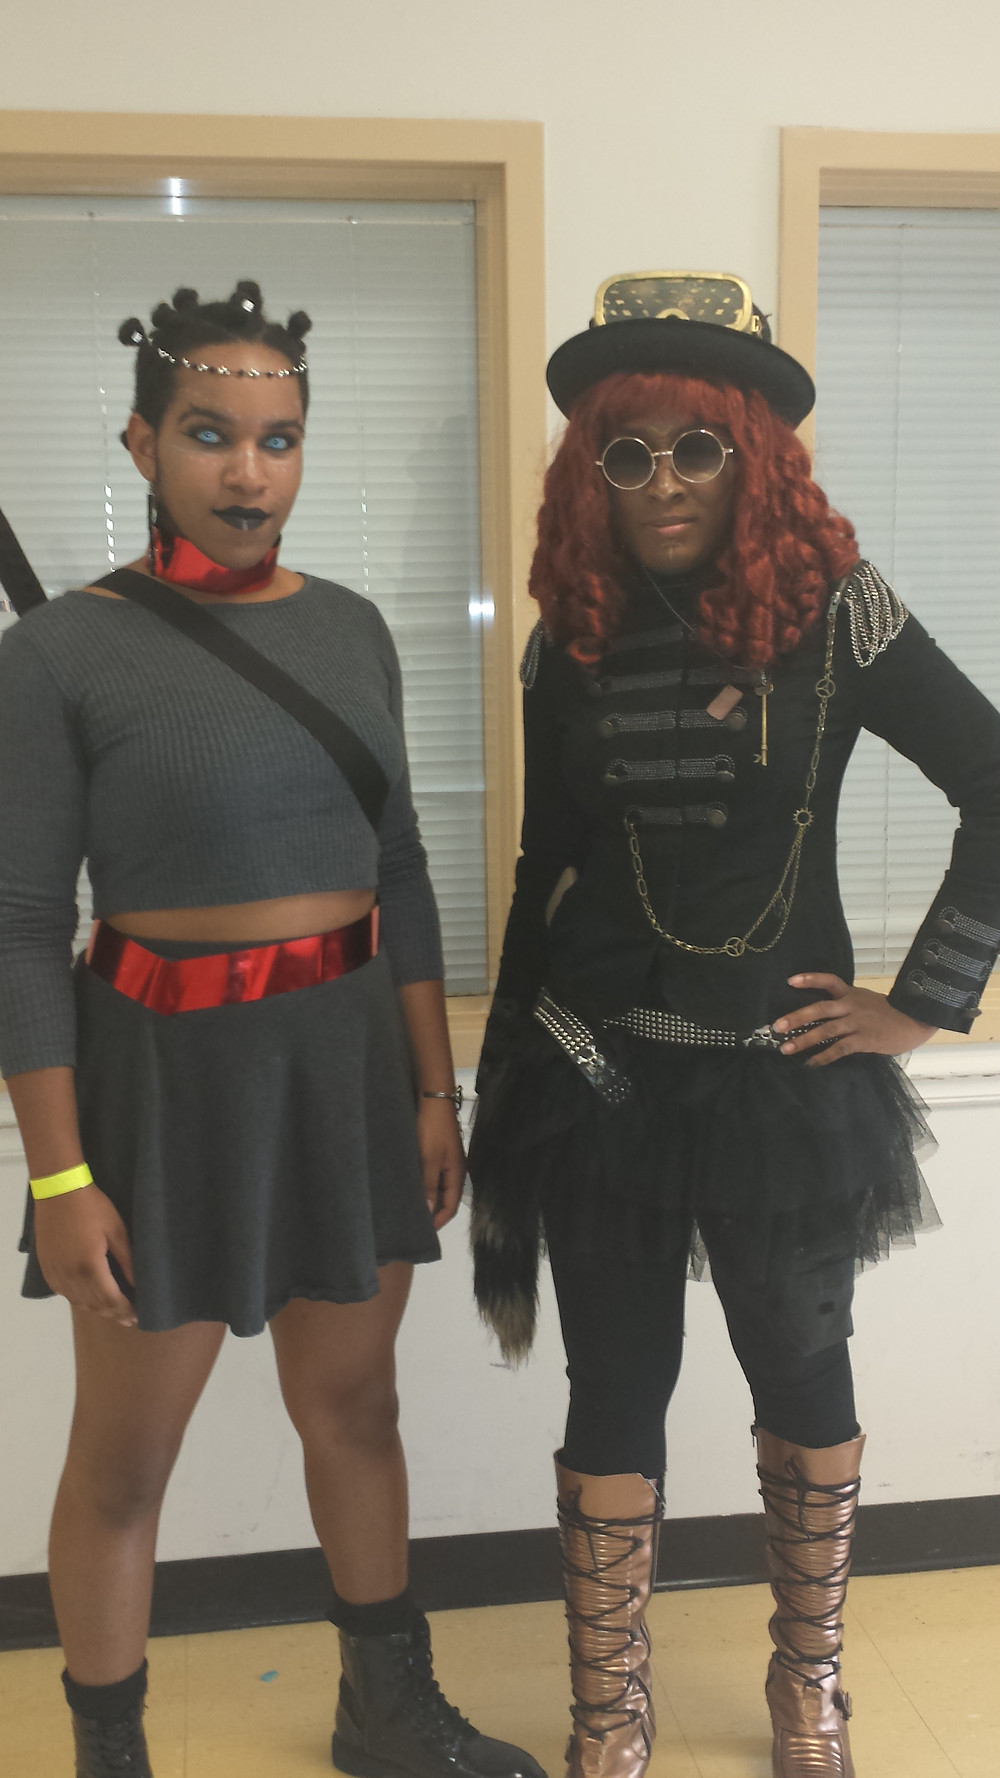 Bad Ass Costumes!